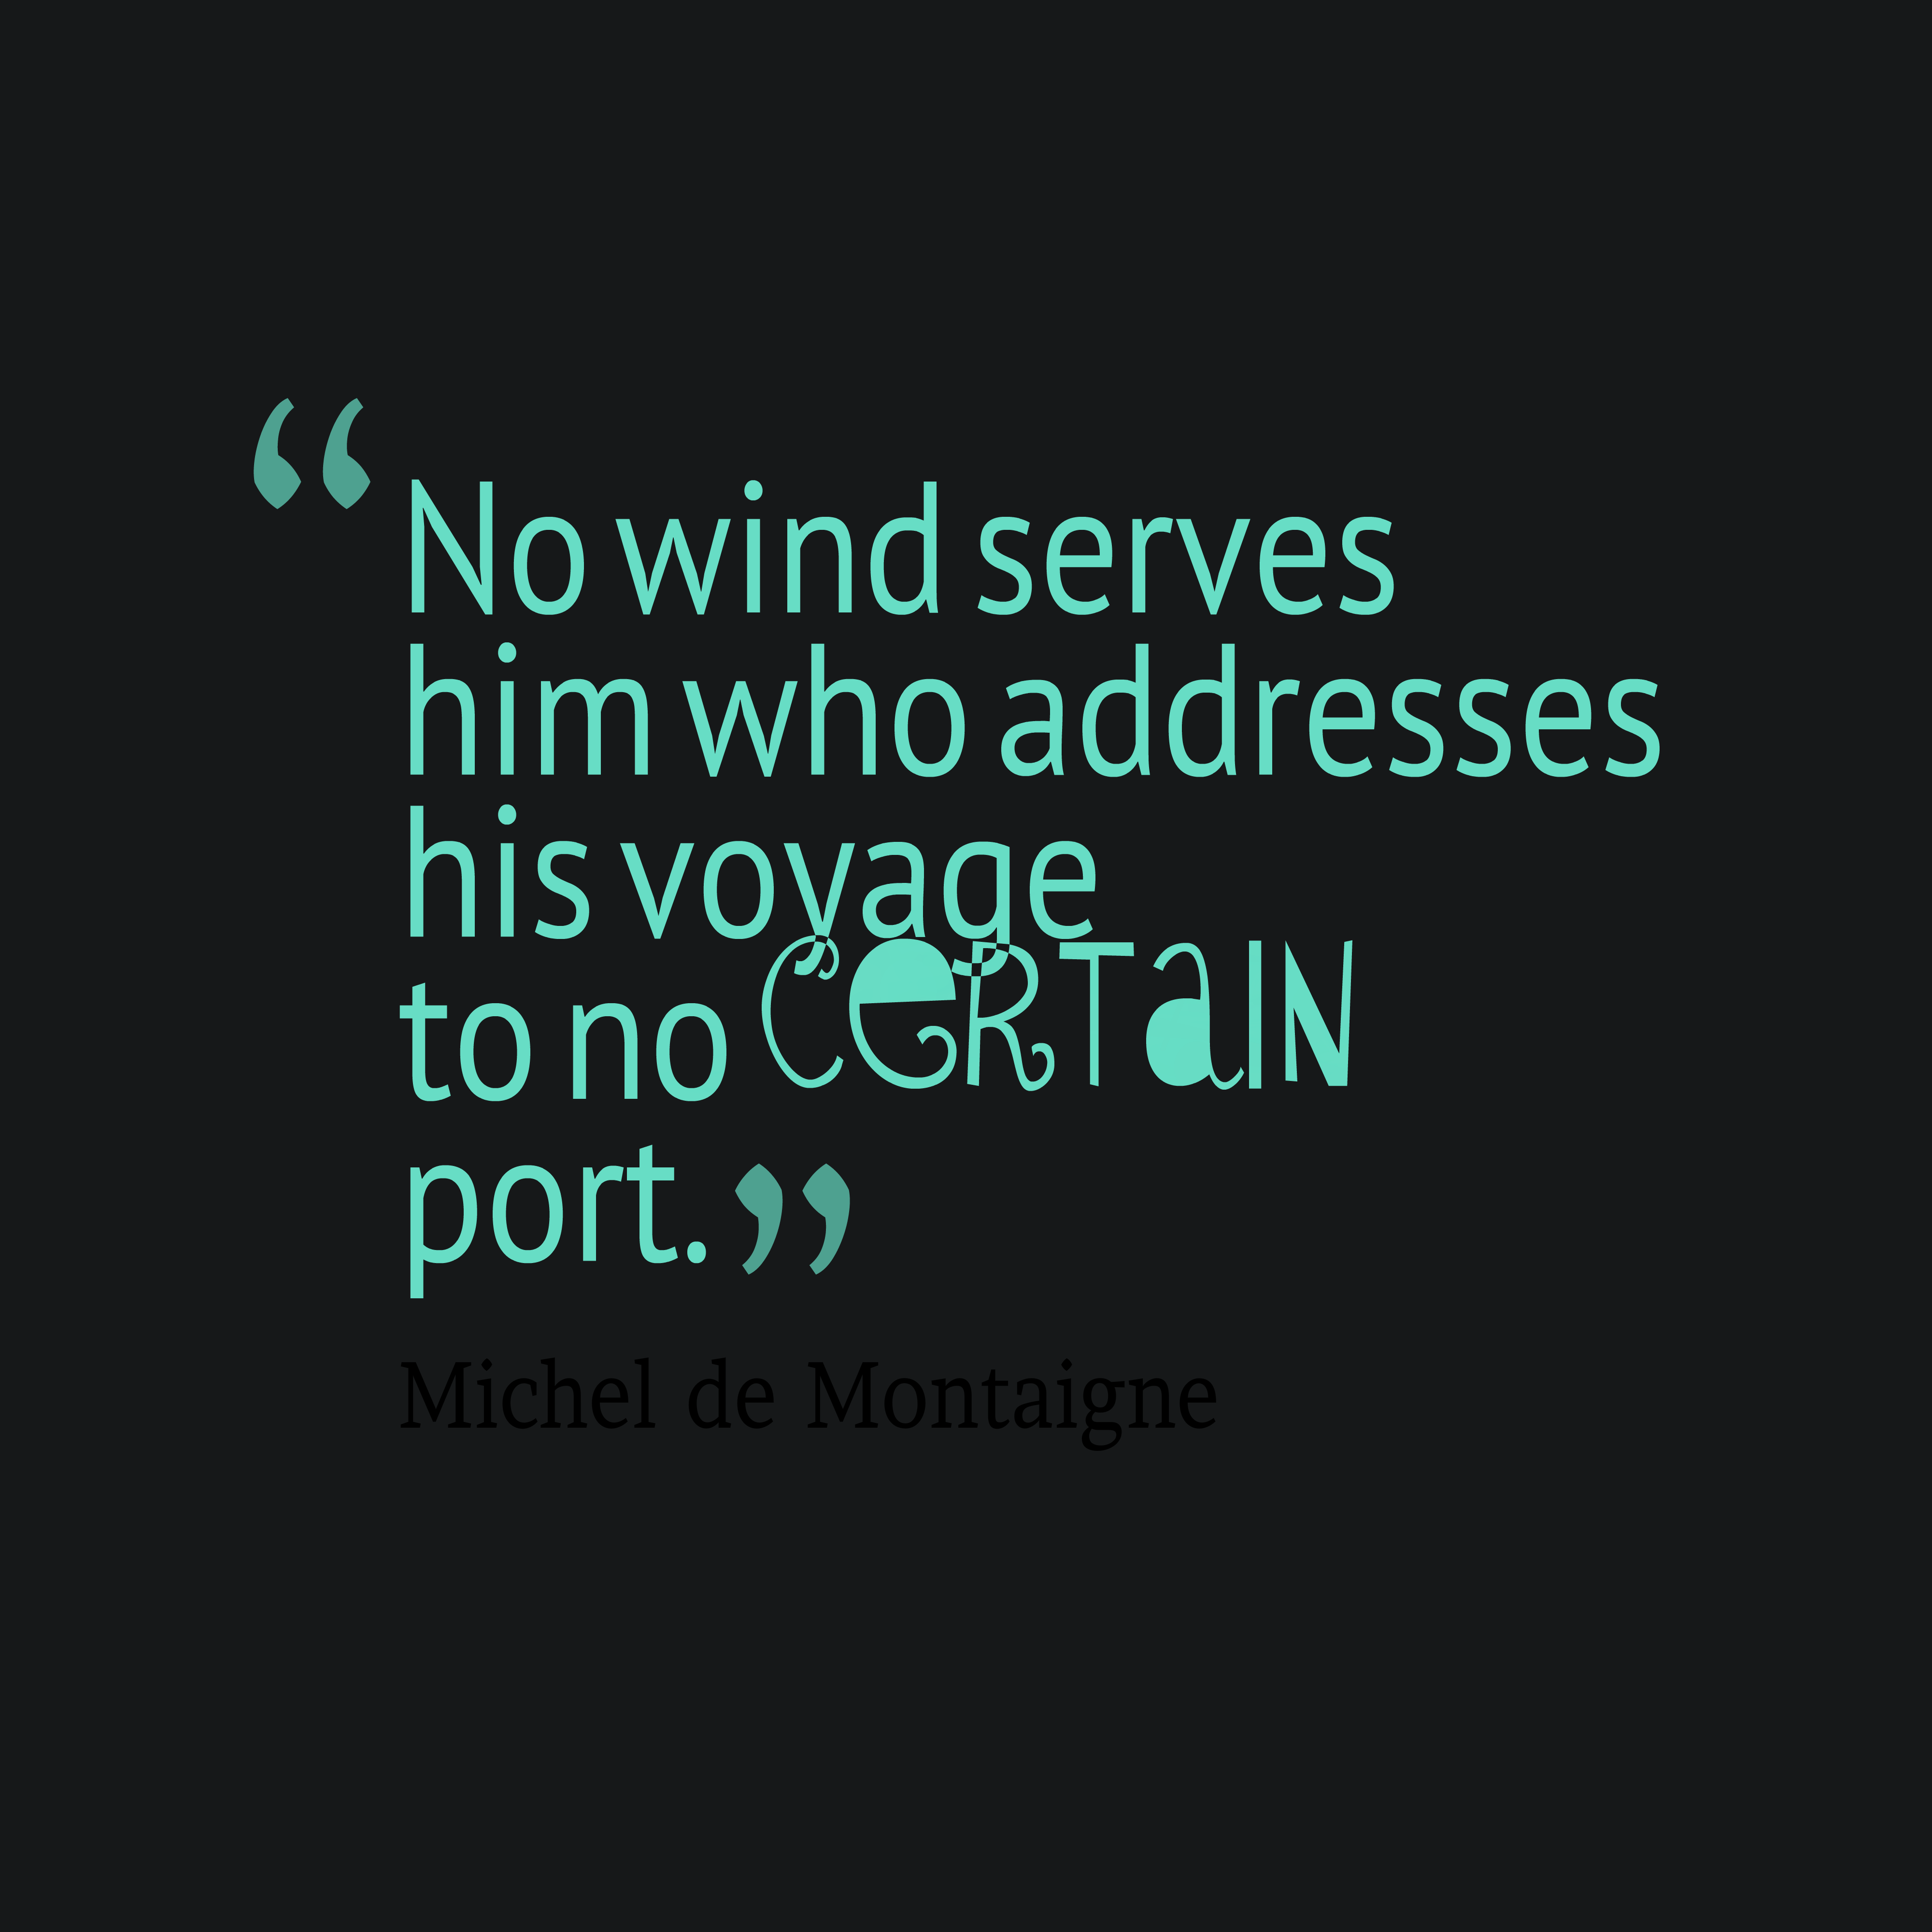 Quotes image of No wind serves him who addresses his voyage to no certain port.